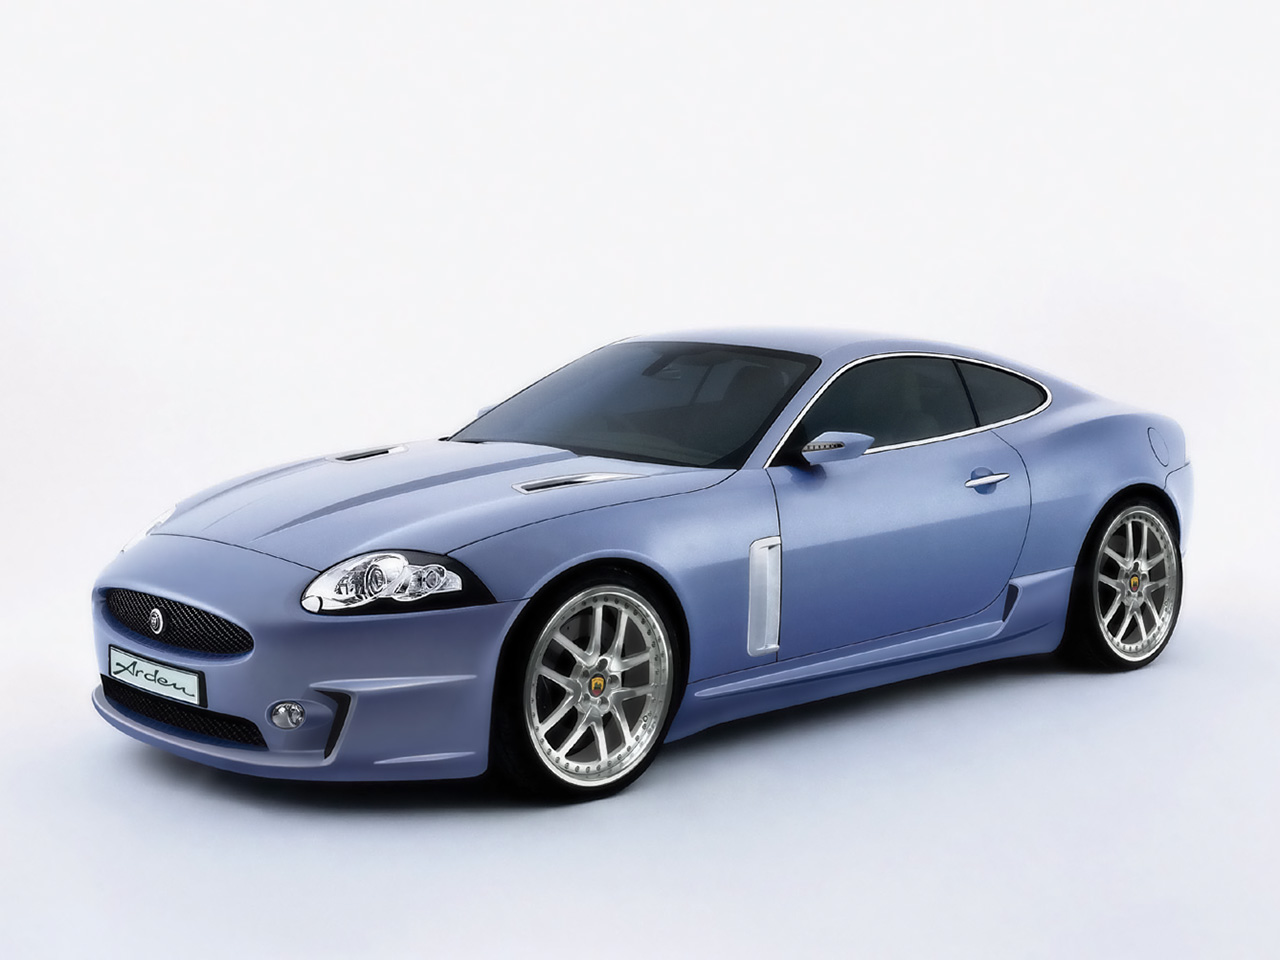 Jaguar XK Coupe Car Wallpaper   Top Cars Zone